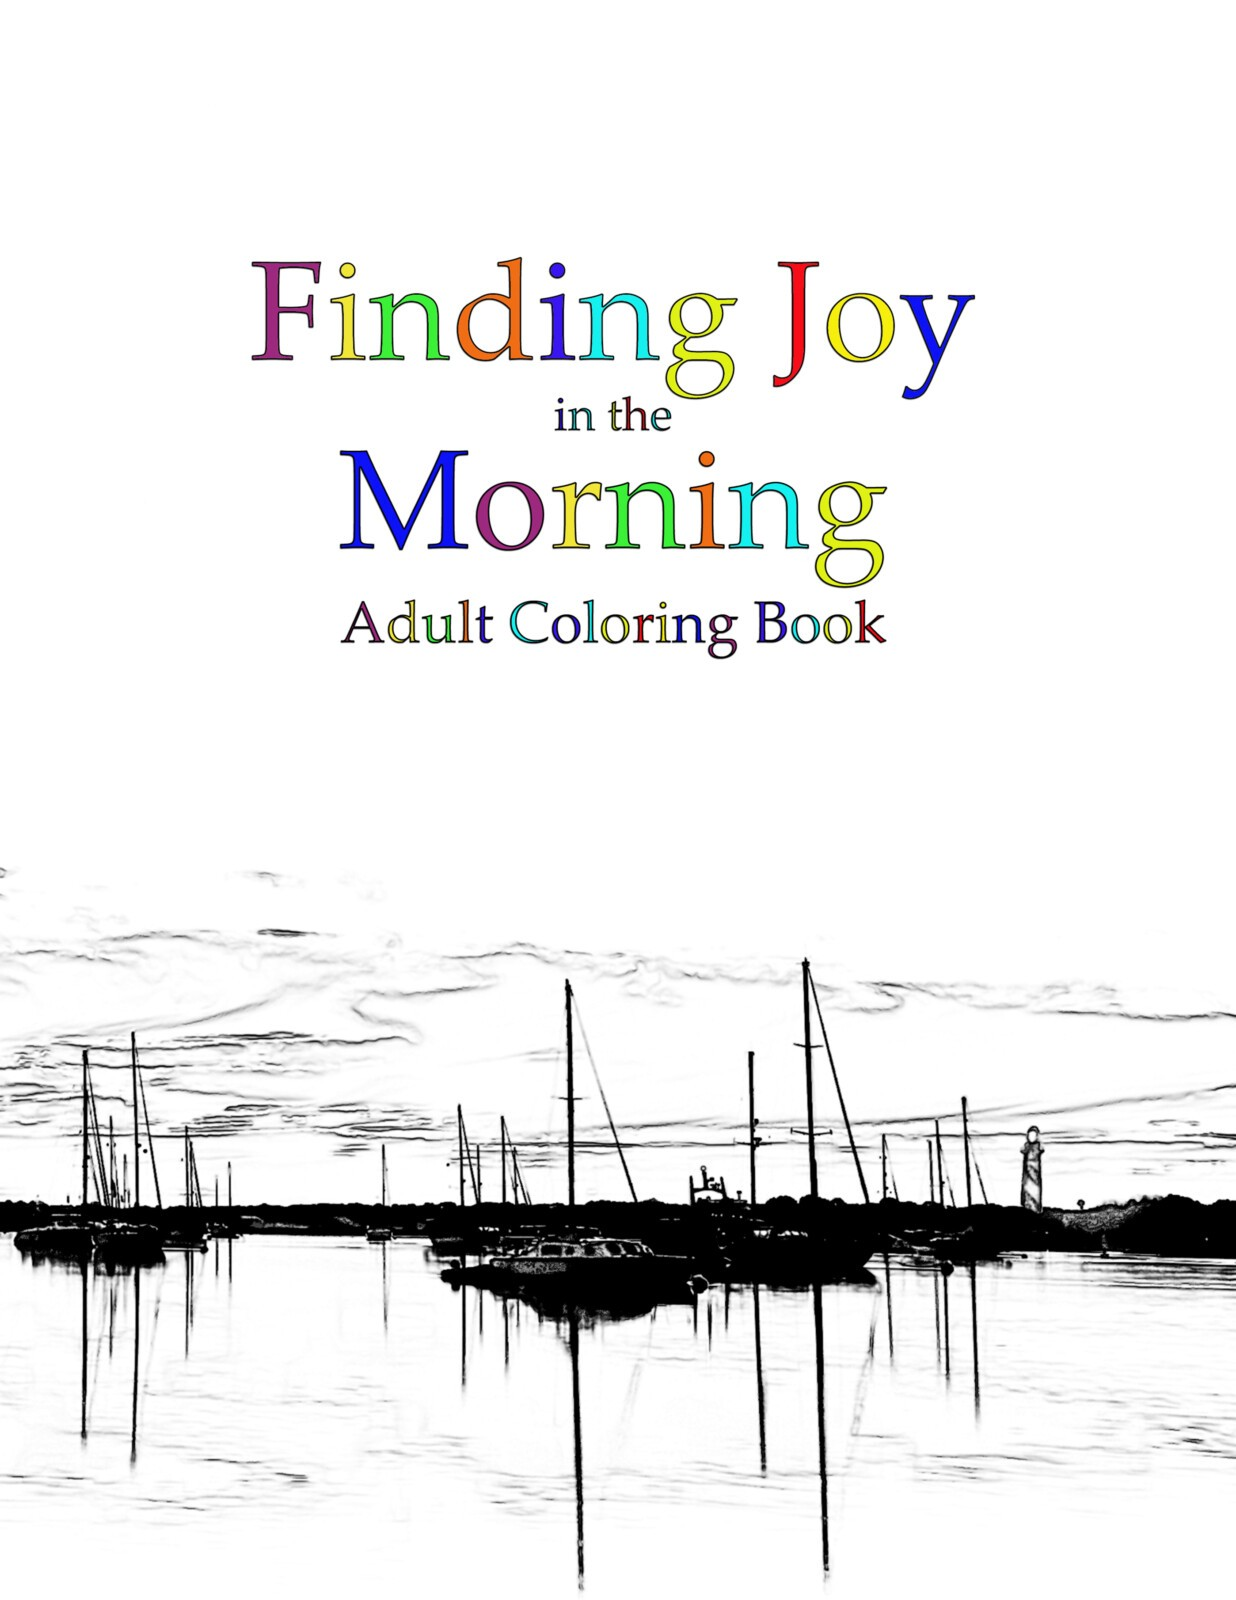 Finding Joy in the Morning Adult Coloring Book